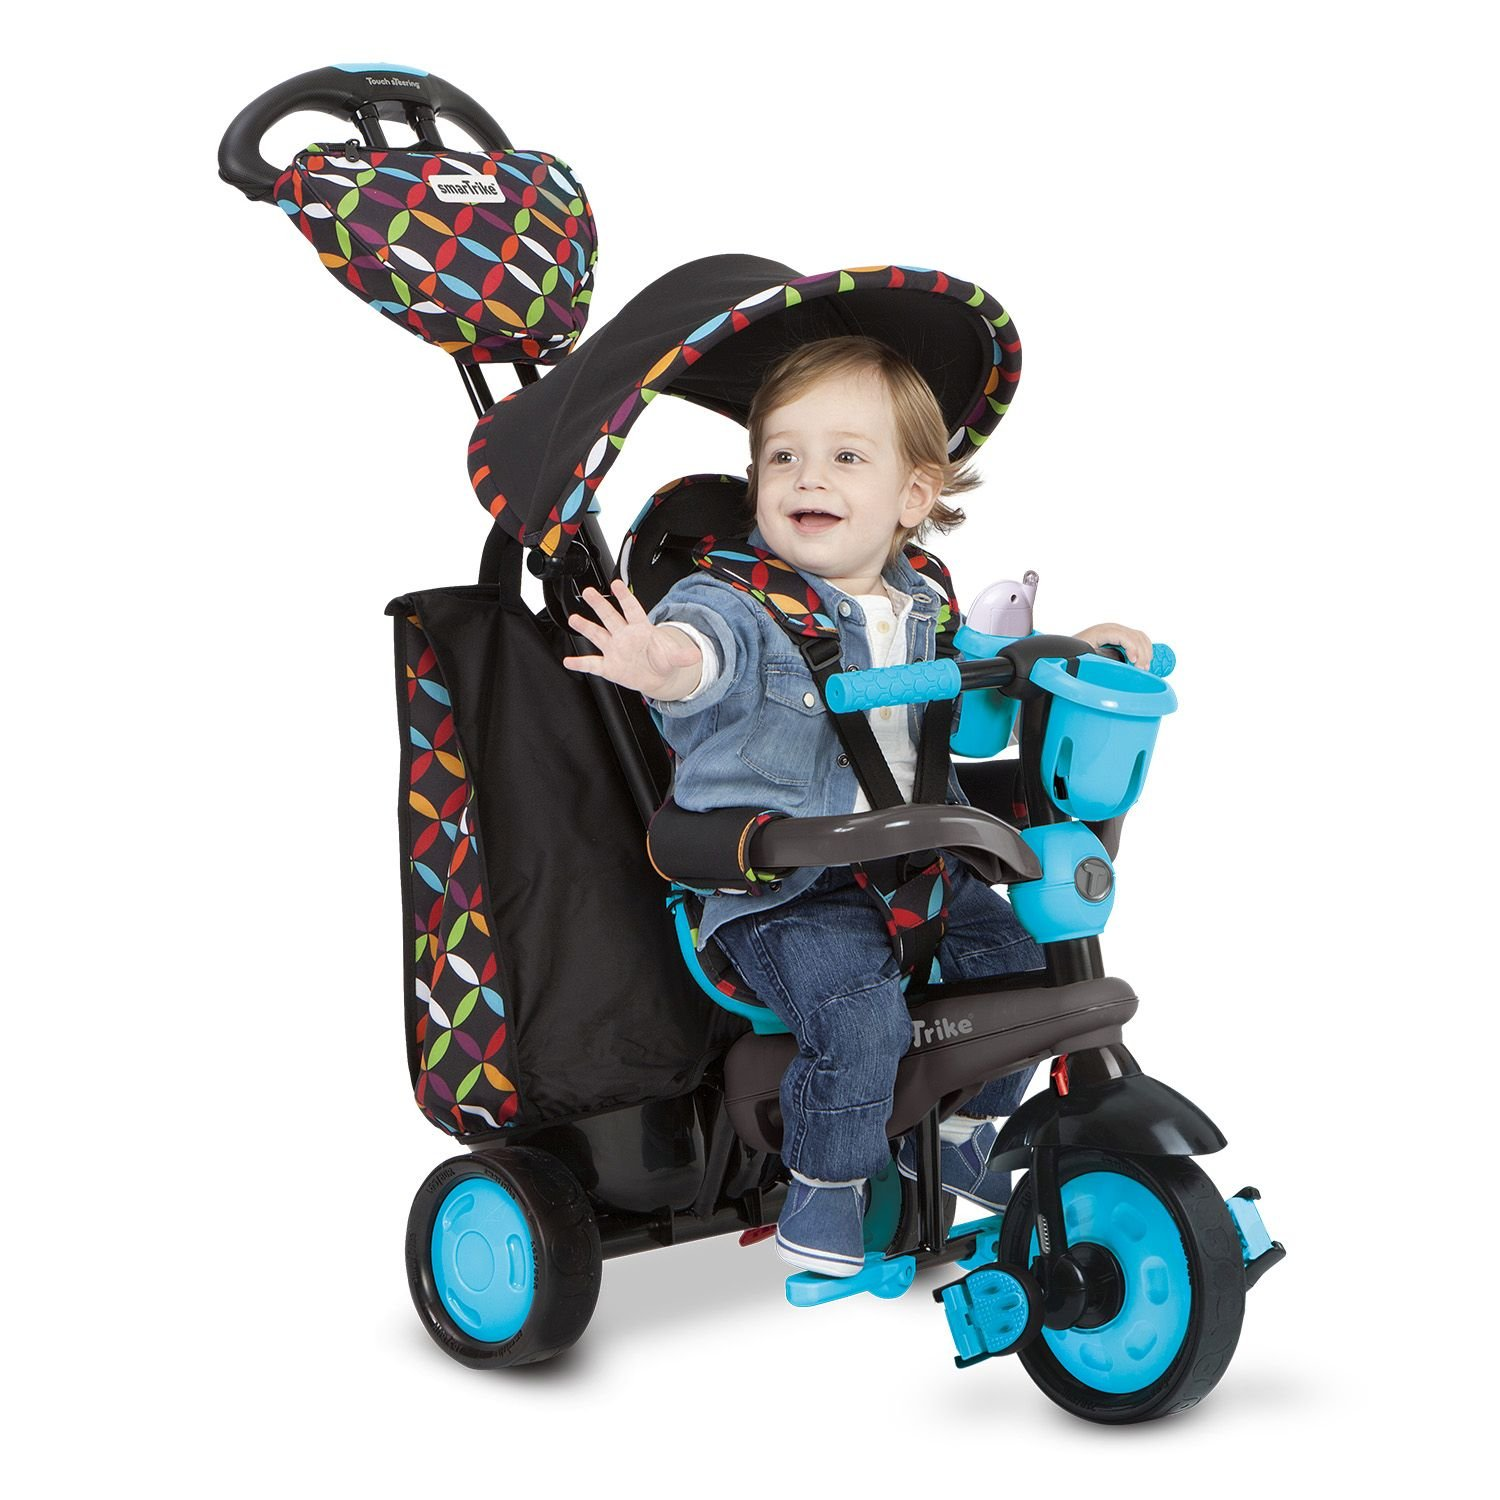 amazoncom  smart trike touch steering boutique  red  toys  - amazoncom  smart trike touch steering boutique  red  toys games  baby